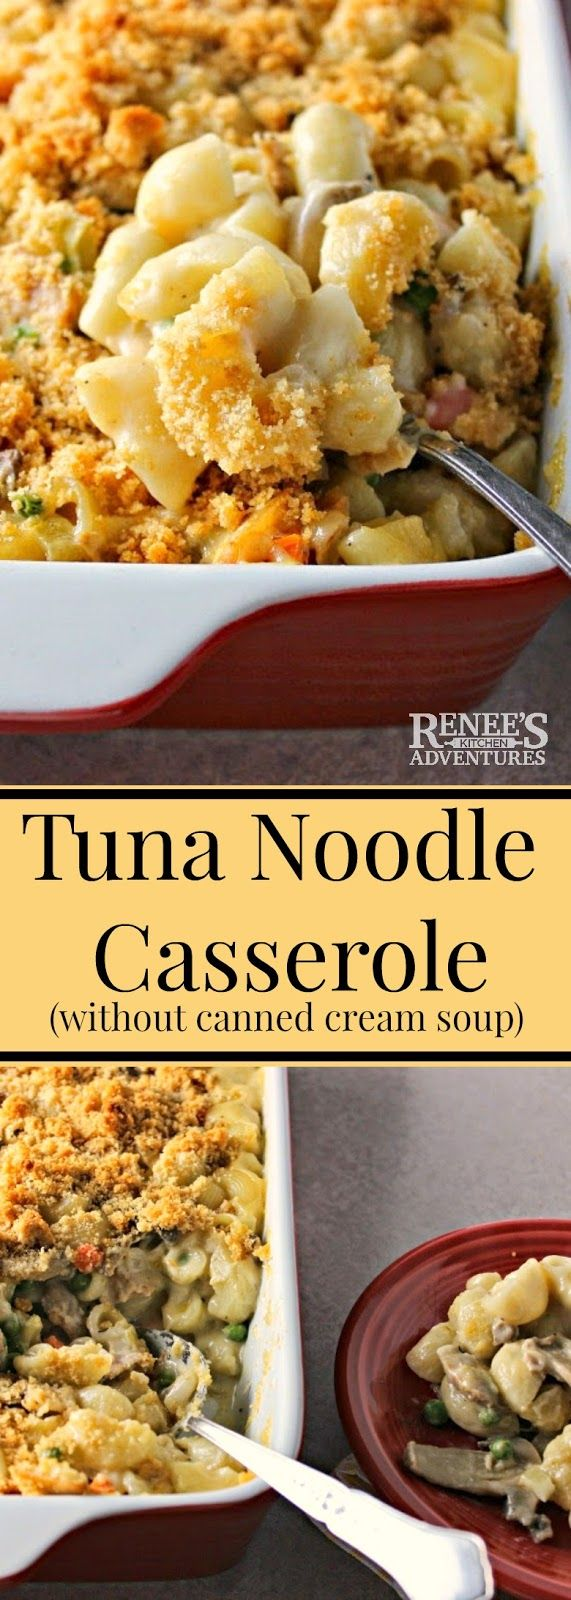 Lighter Cheesy Tuna Noodle Casserole (without Canned Cream Soup)   Renee's Kitchen Adventures - easy recipe for tuna noodle casserole made without cream of anything soup! Family recipe great for an easy dinner.